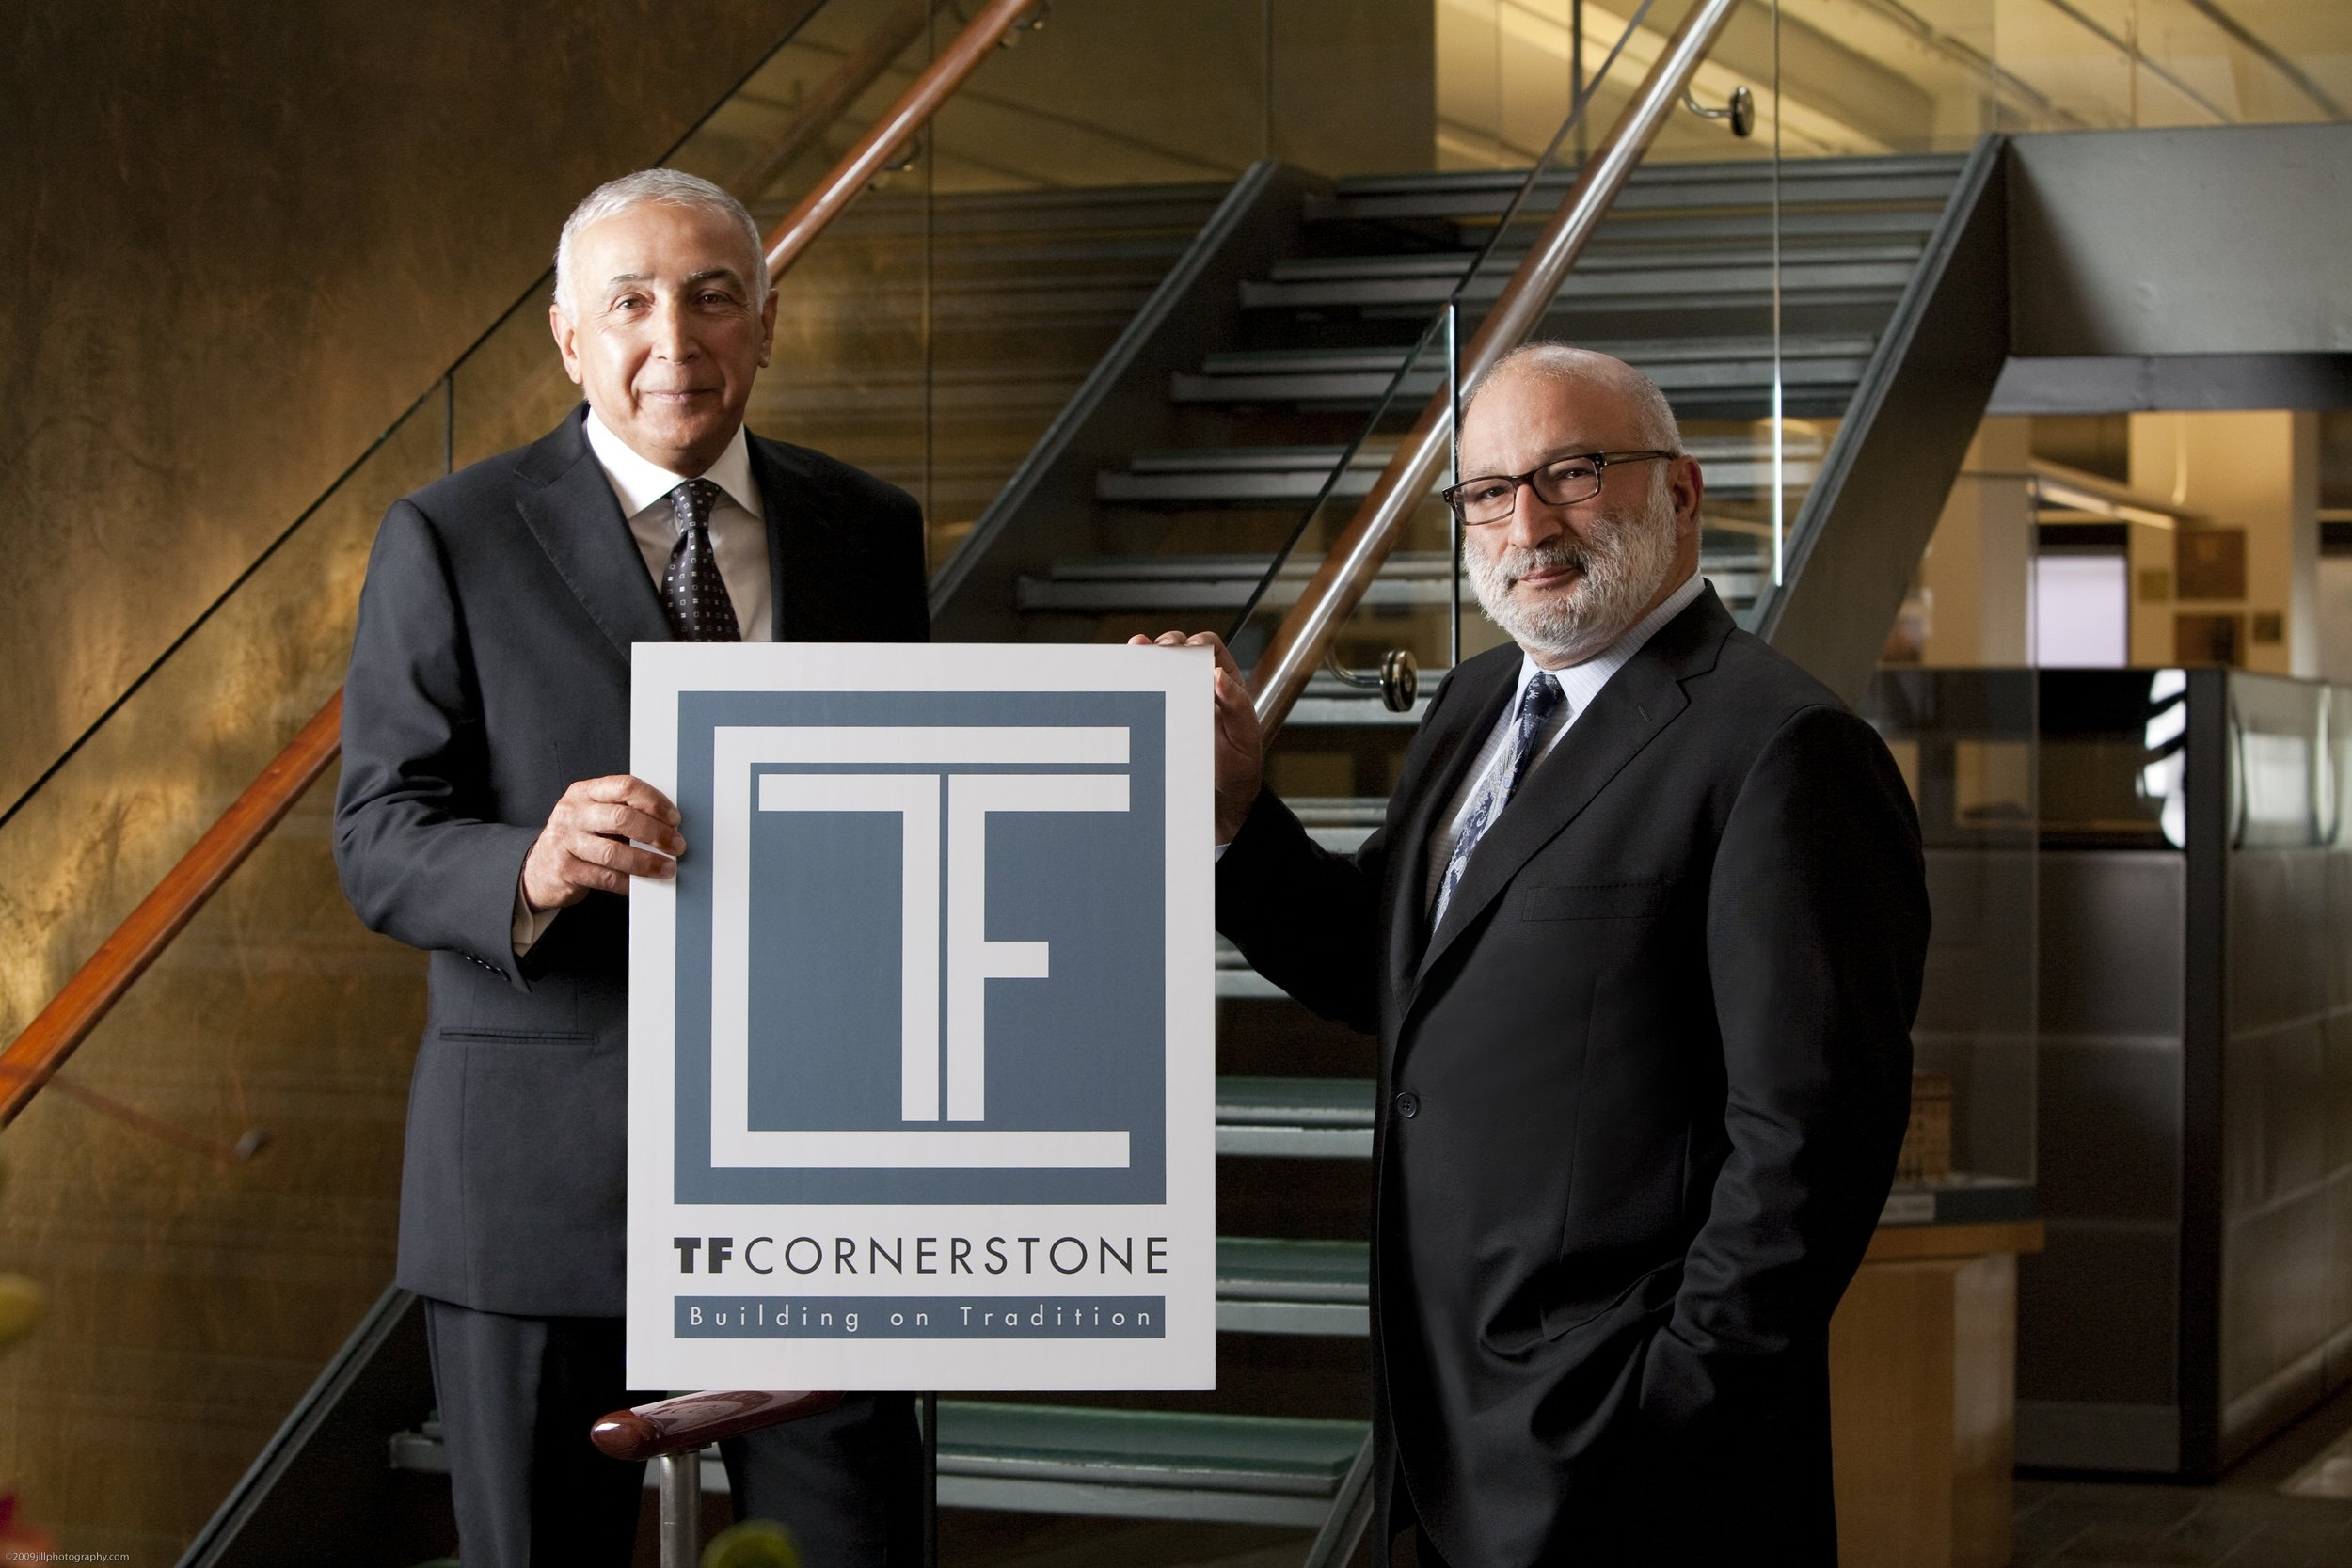 (From left) Tom and Fred Elghanayan of TF Cornerstone